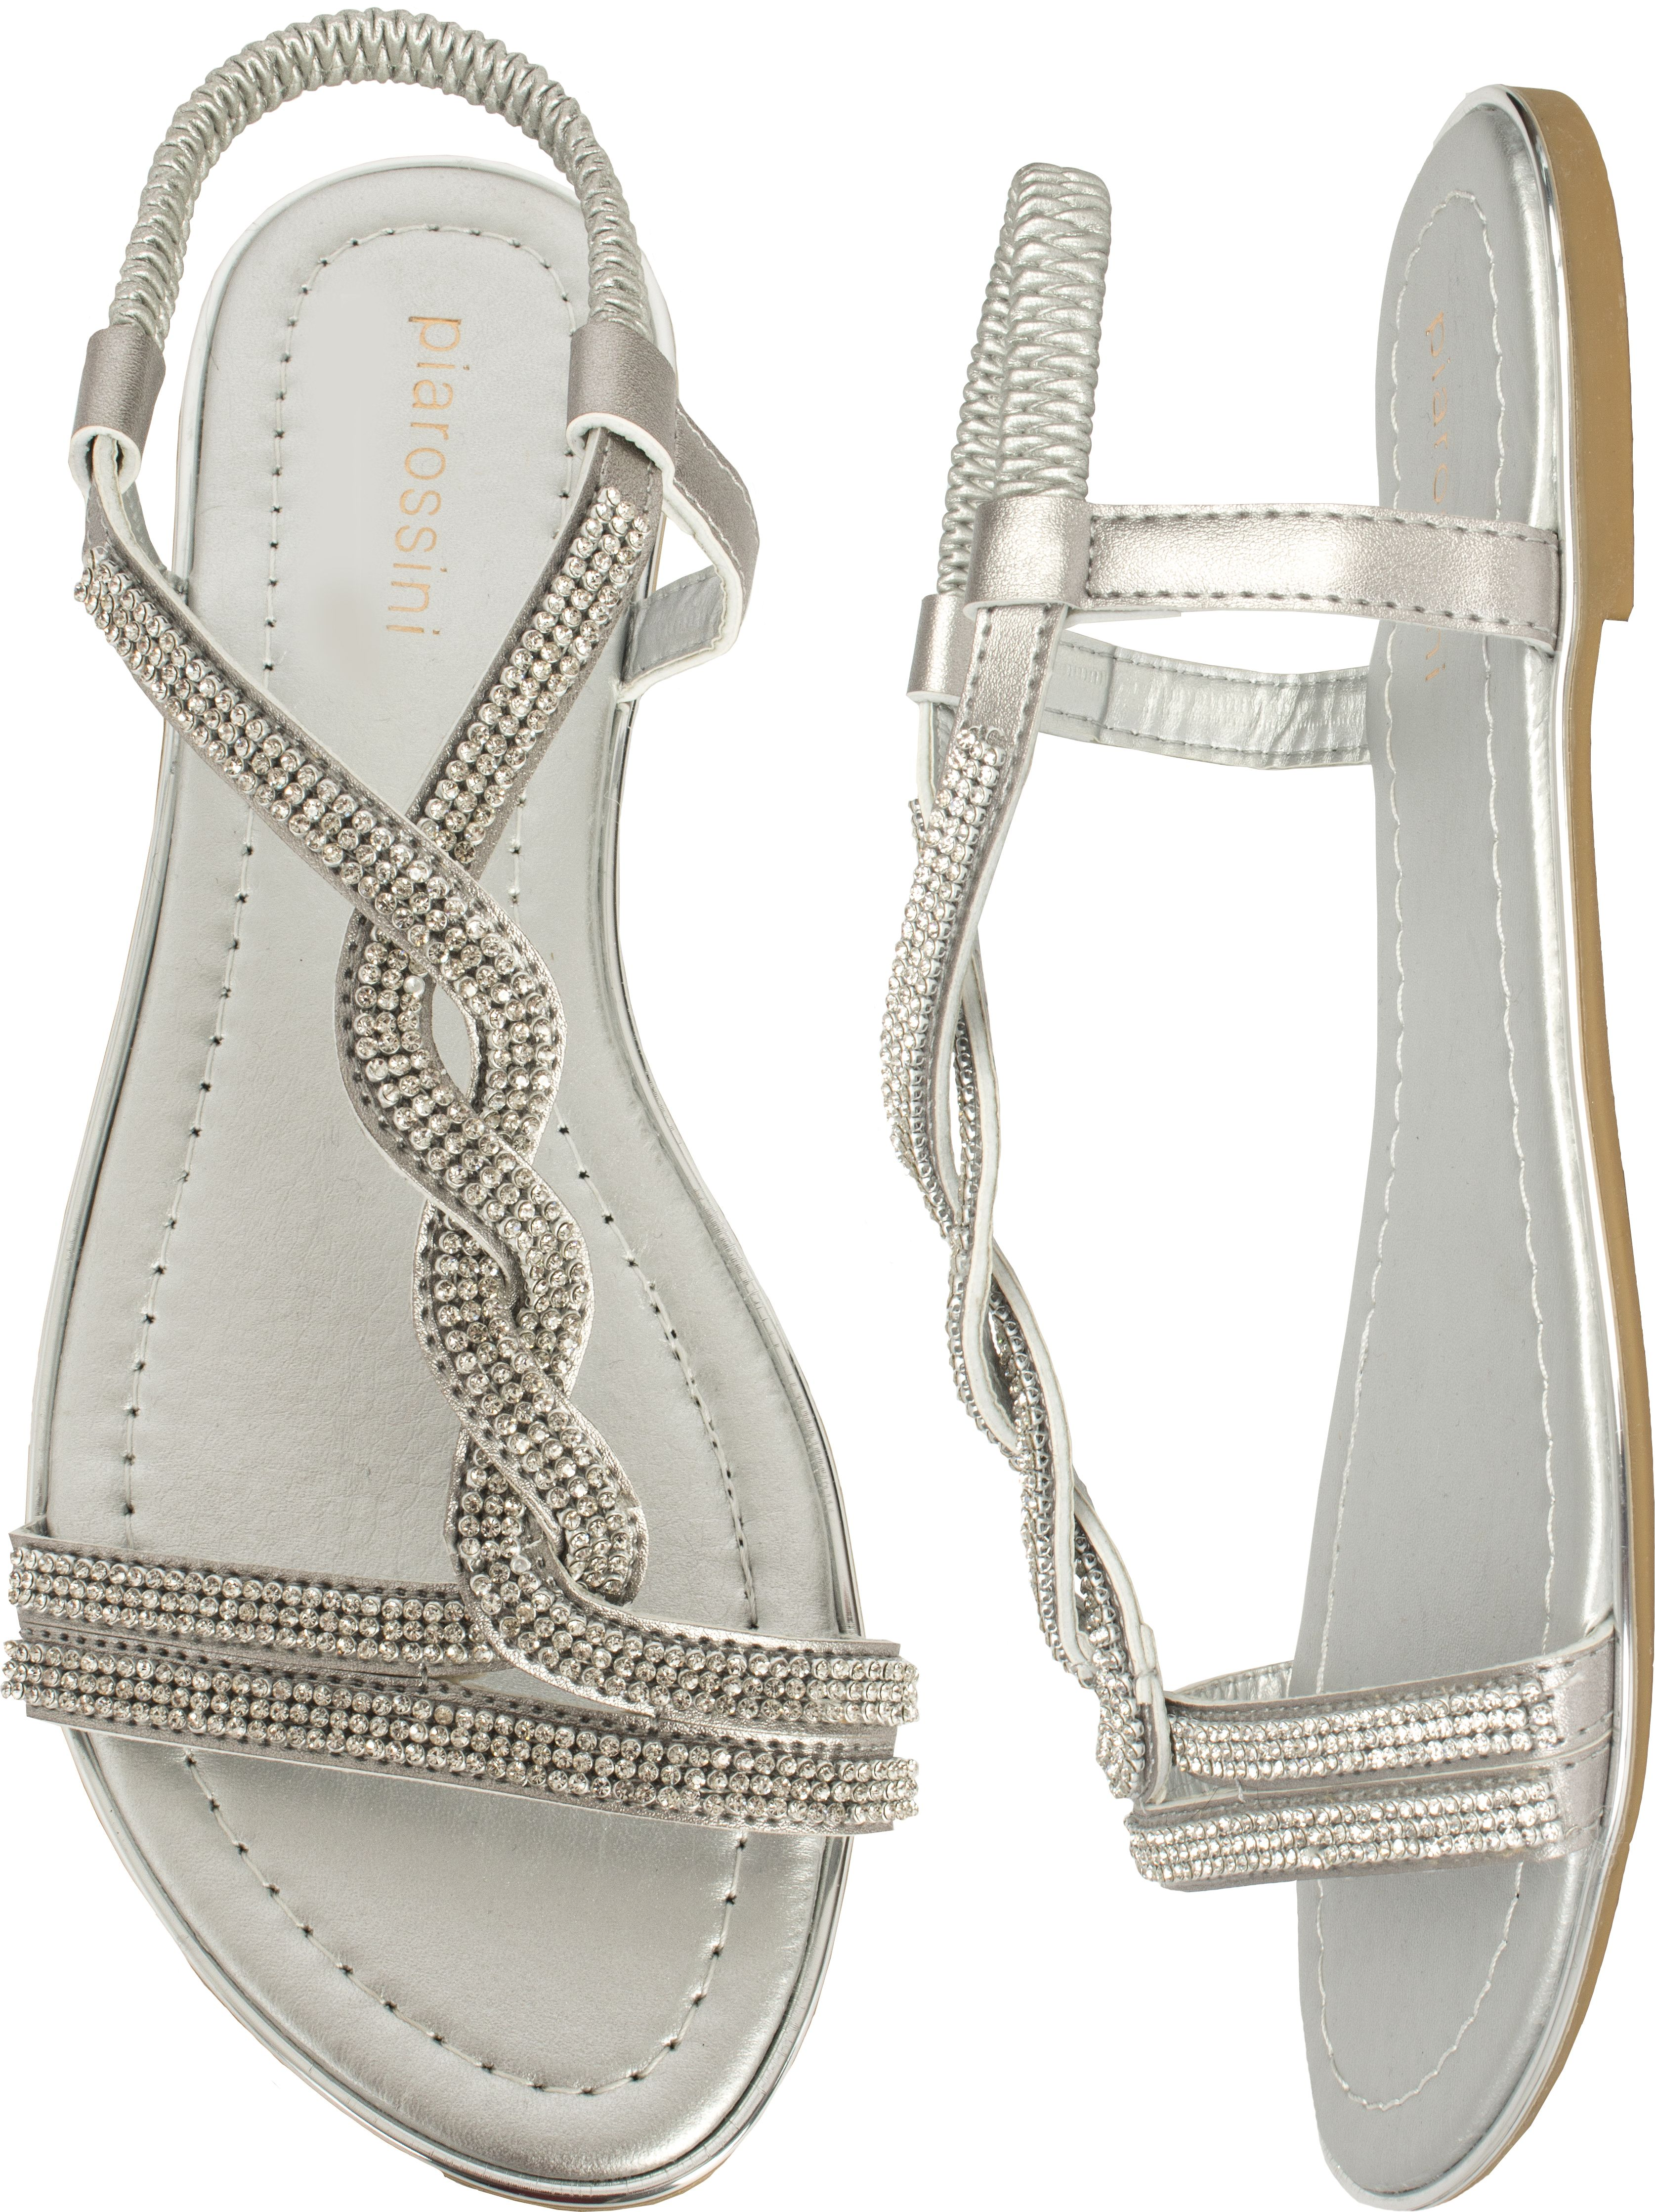 Sandals shoes holidays - Pia Rossini Summer Beach Holiday Sandals Nero Silver